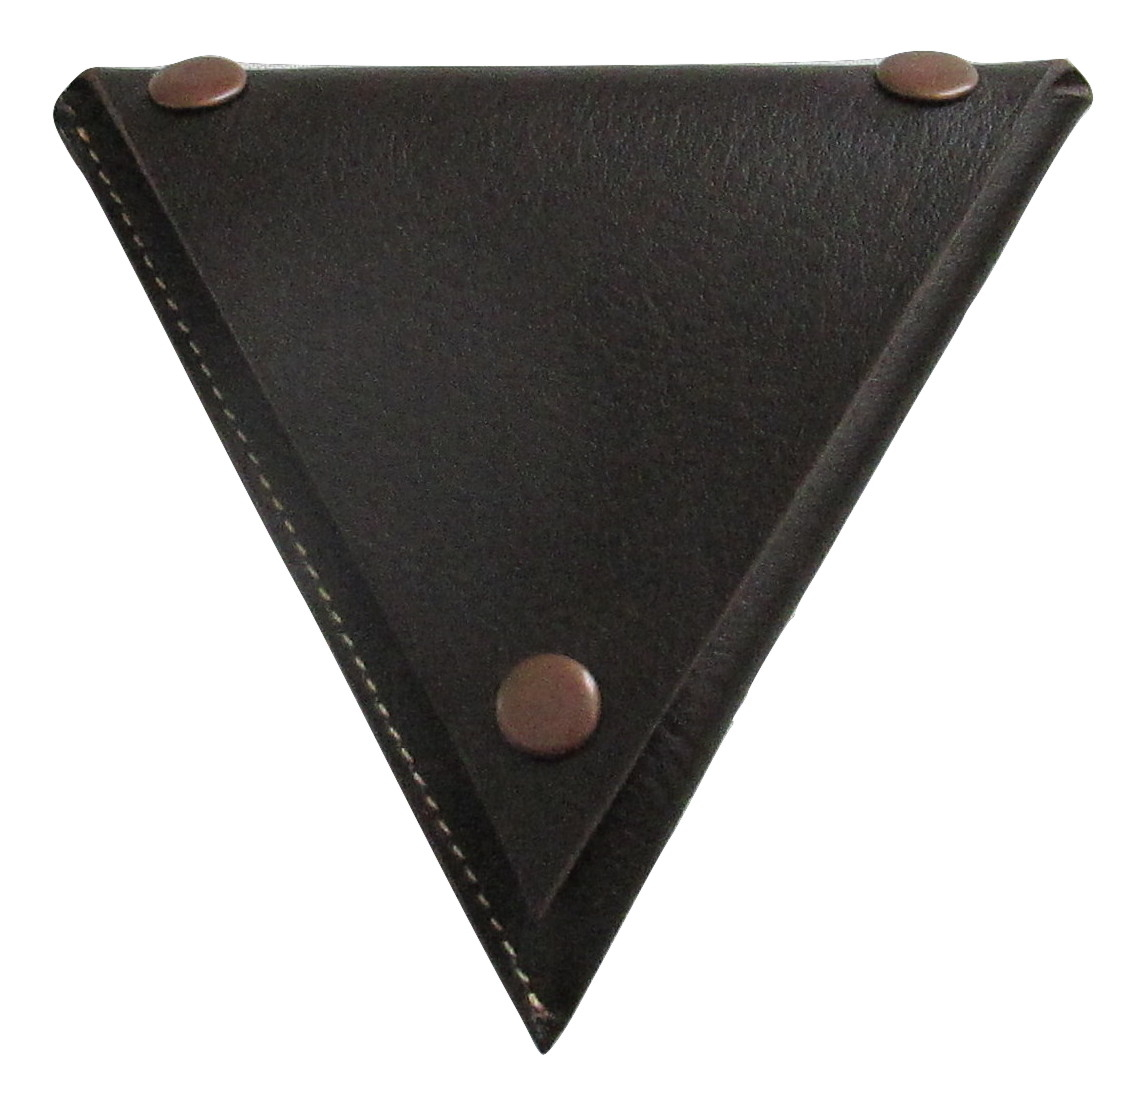 Image of 100% Genuine Leather Coin Purse in Brown